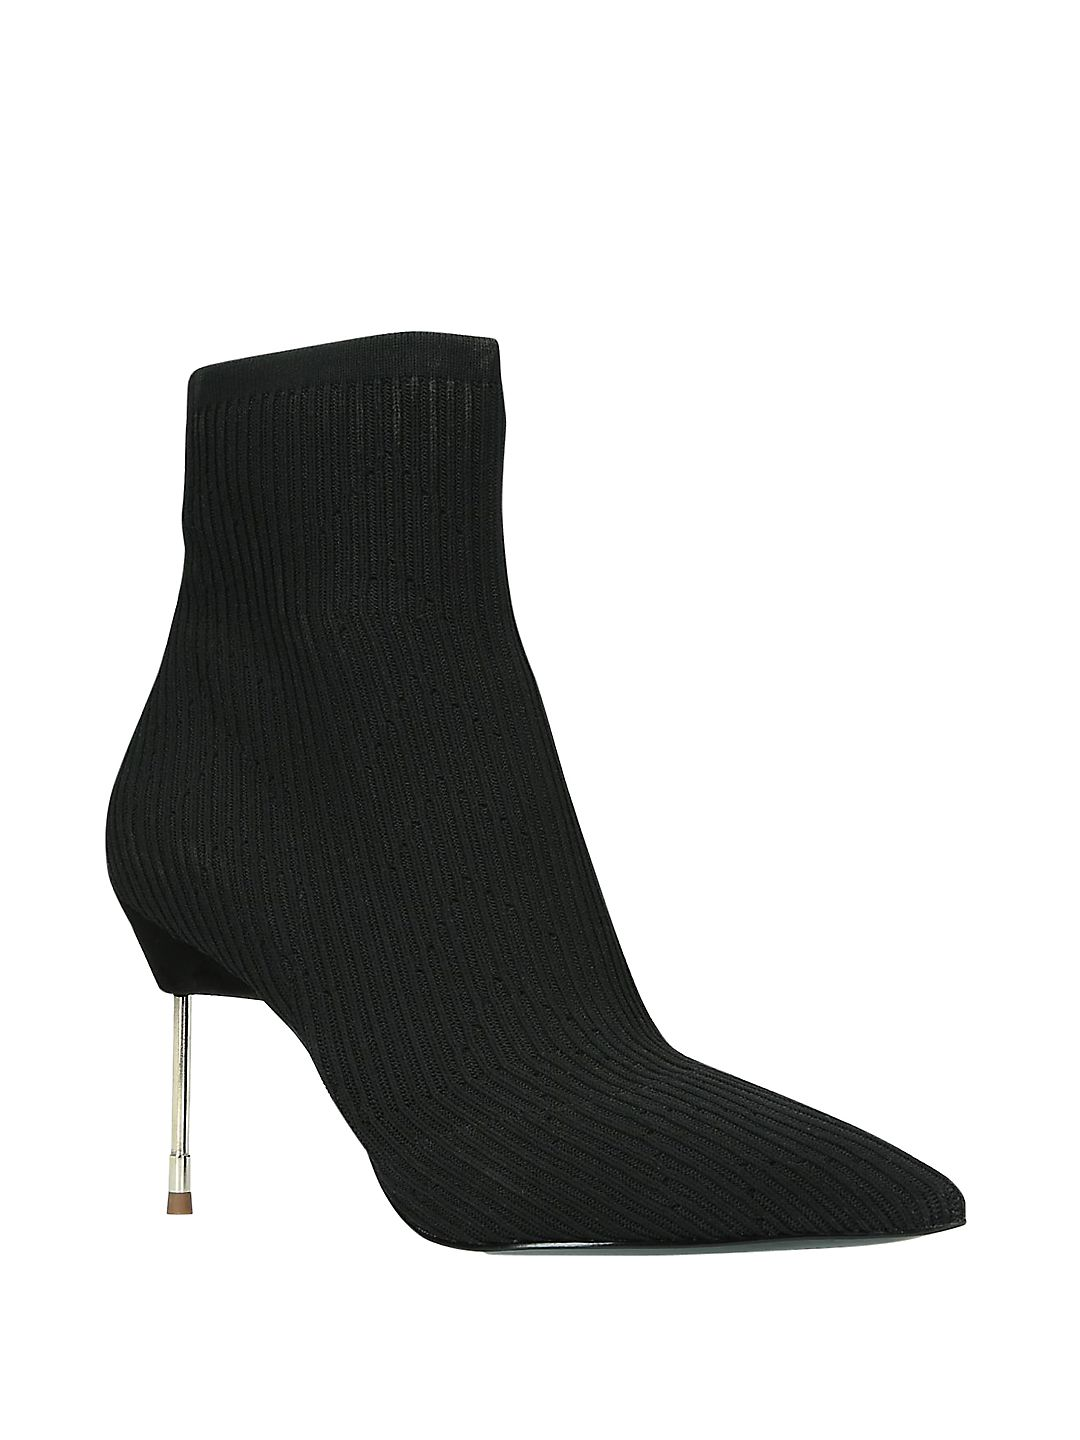 Barbican Stiletto Sock Ankle Boots